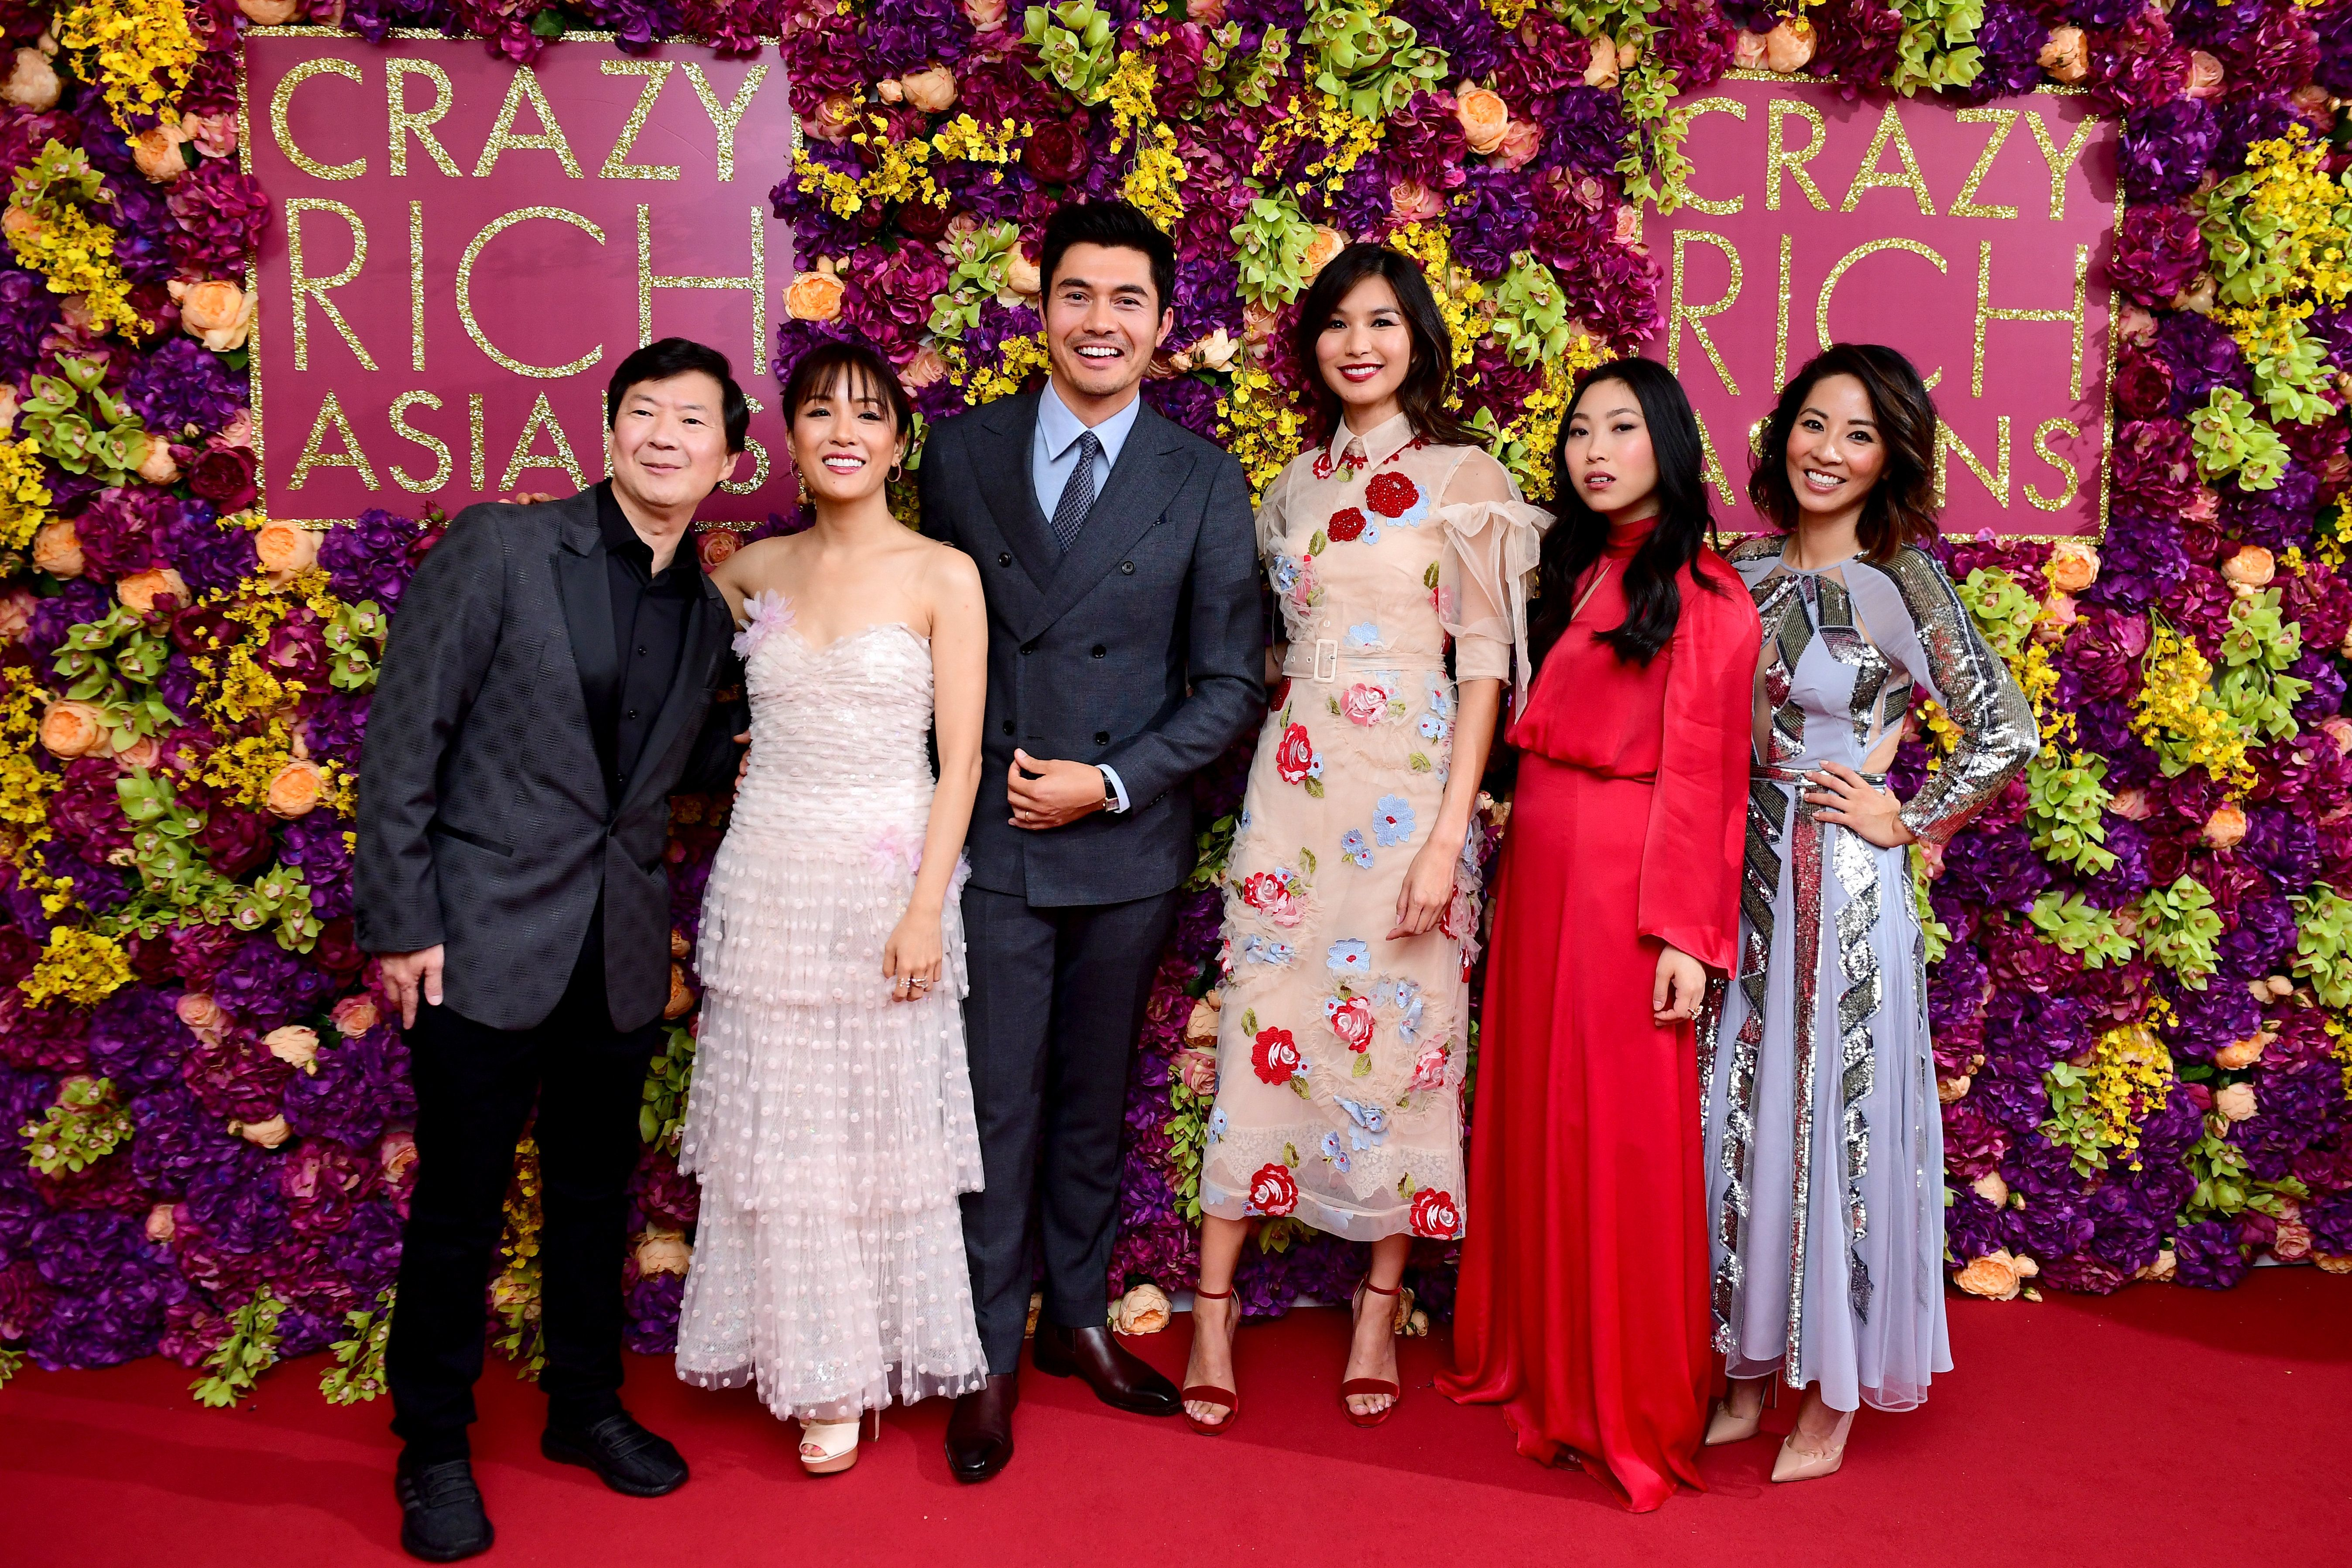 'Crazy Rich Asians' Is Now The Highest-Grossing Romantic Comedy In A